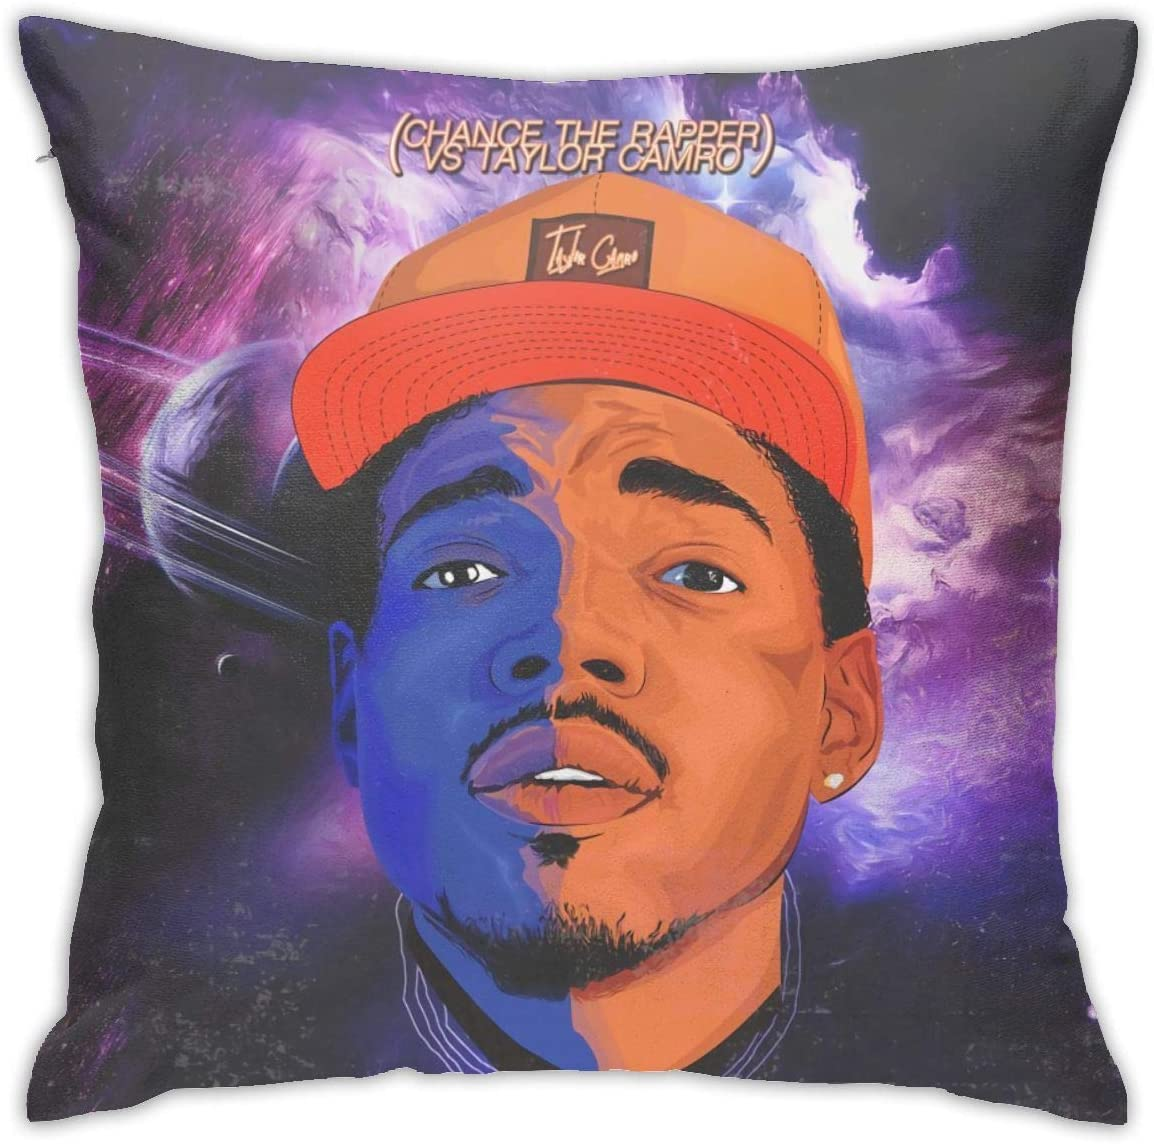 KarleDeal Chance The Rapper Pillowcase Fashion Square Throw Pillow Covers Home Office Pillow 18 Inch18 Inch